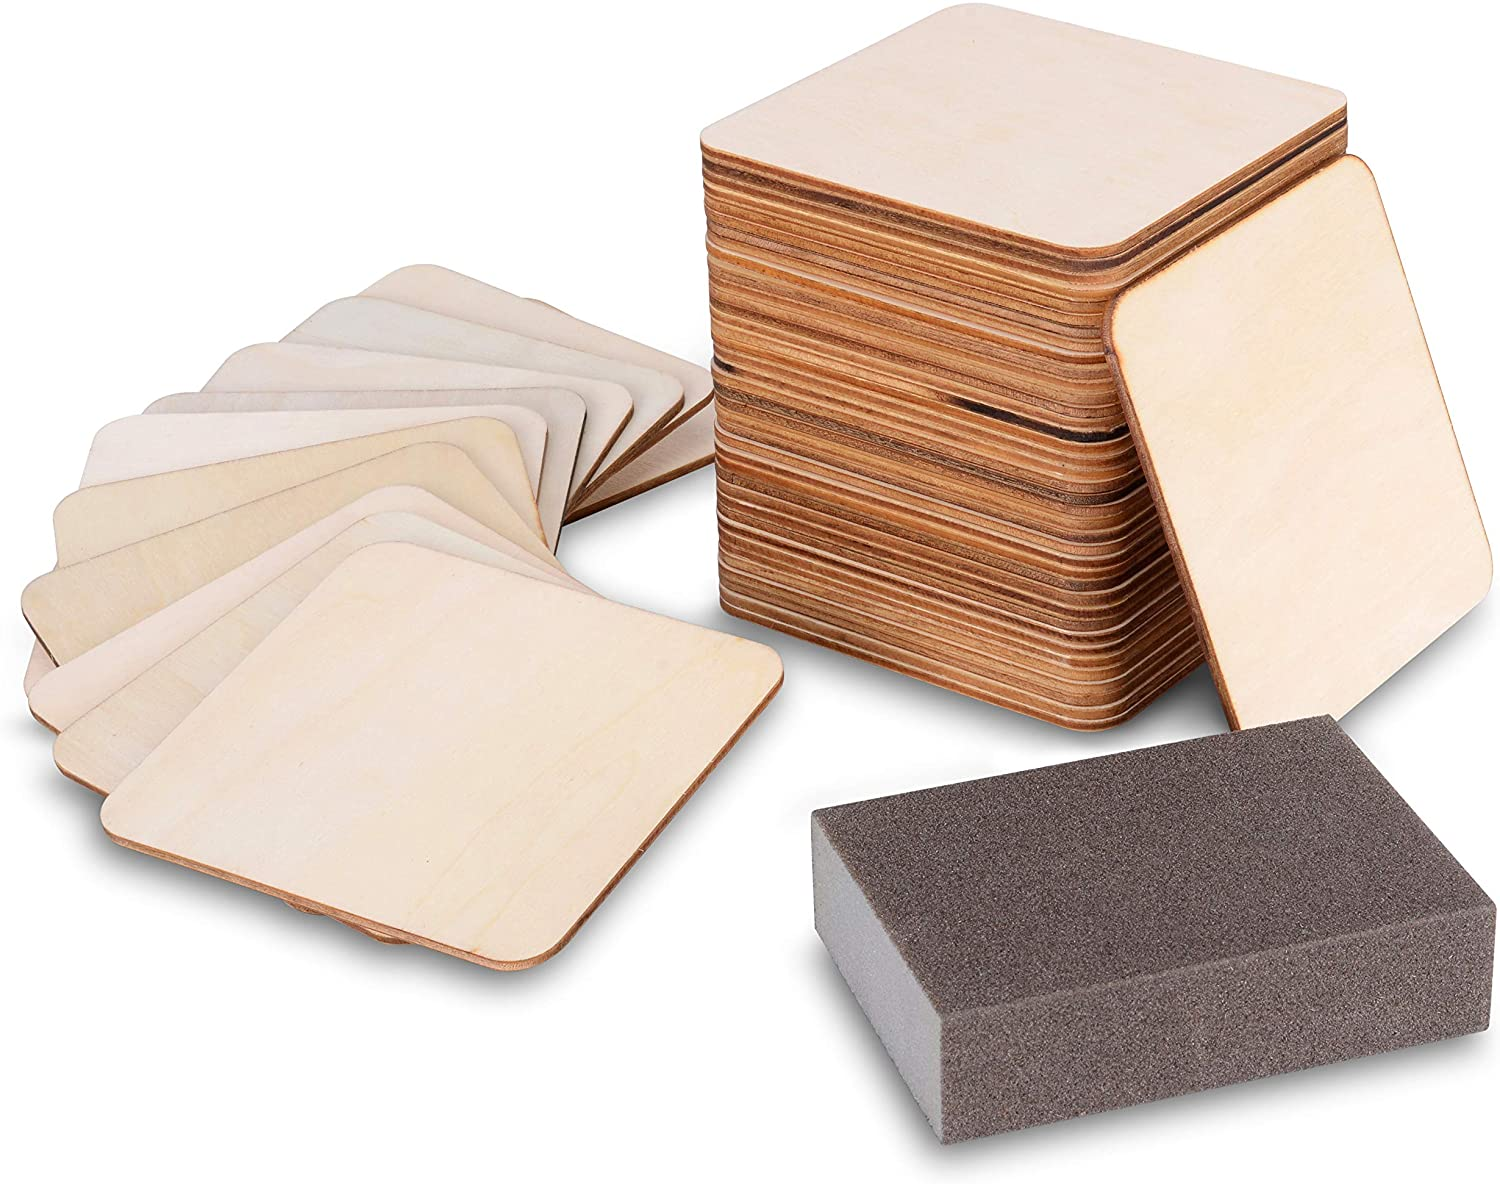 ZHAOER Unfinished Wood 50 Pcs Wooden Squares Blank Wood Slices with Sanding Sponge for DIY Crafts Painting Coasters and Ornaments (4 INCH)